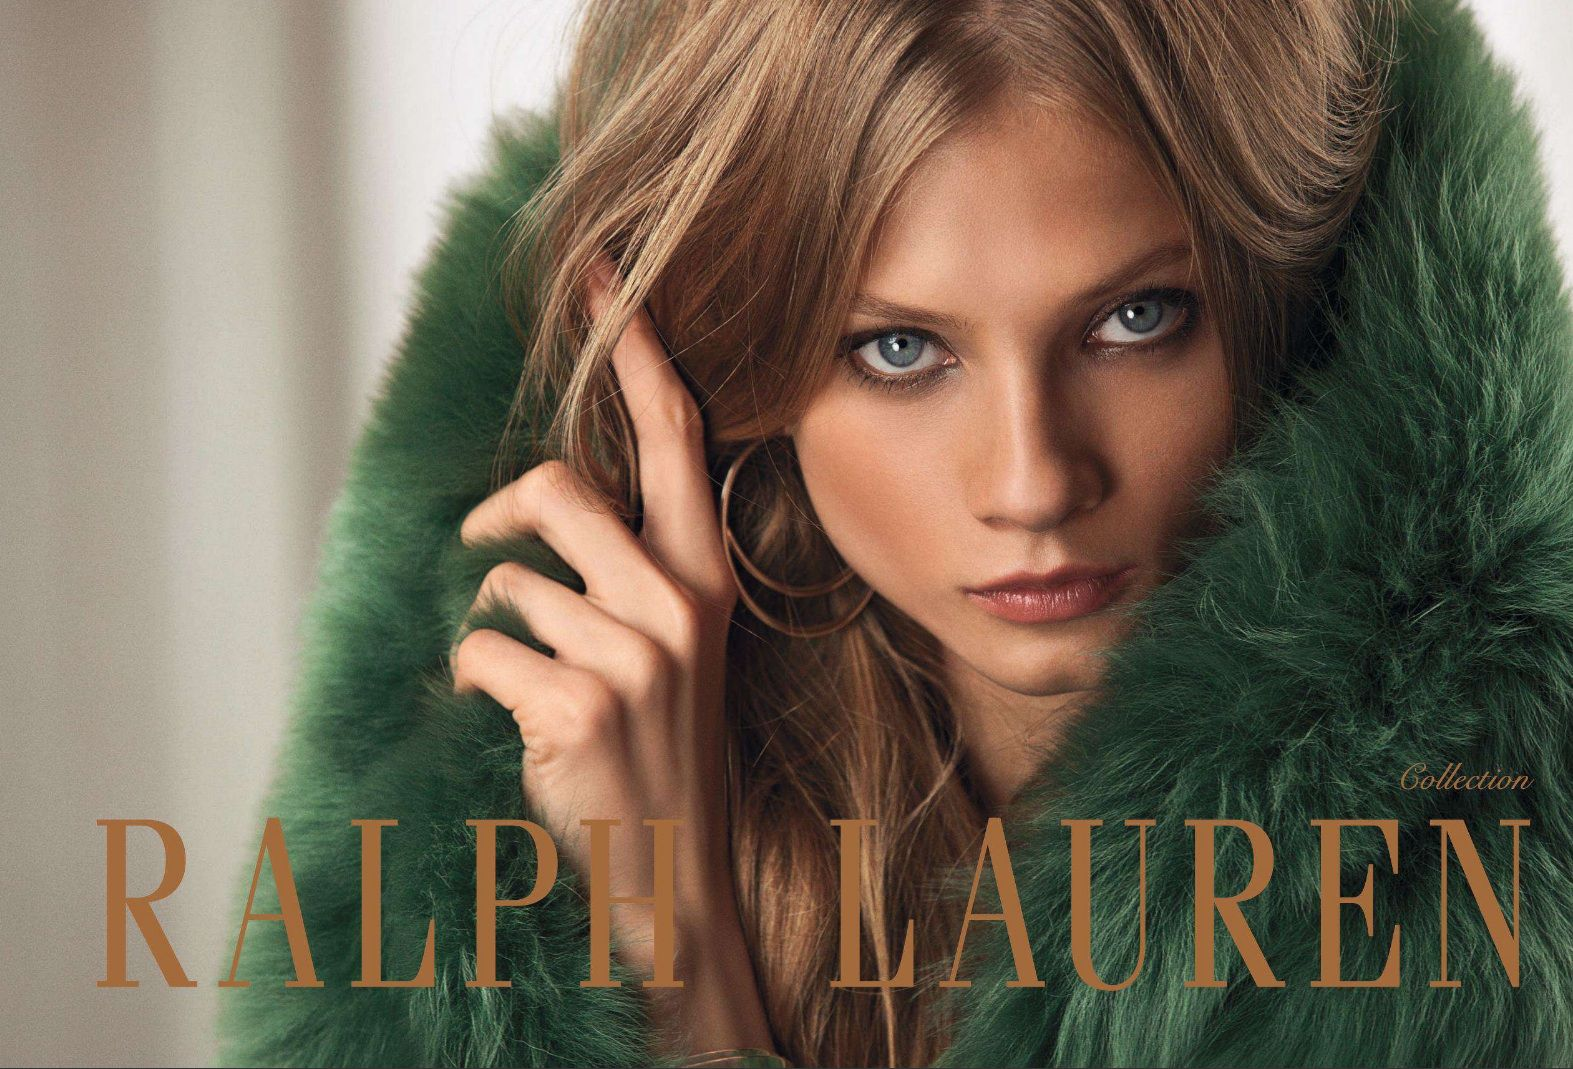 ralph lauren collection spring summer 2012 ad campaign art8amby 39 s blog. Black Bedroom Furniture Sets. Home Design Ideas